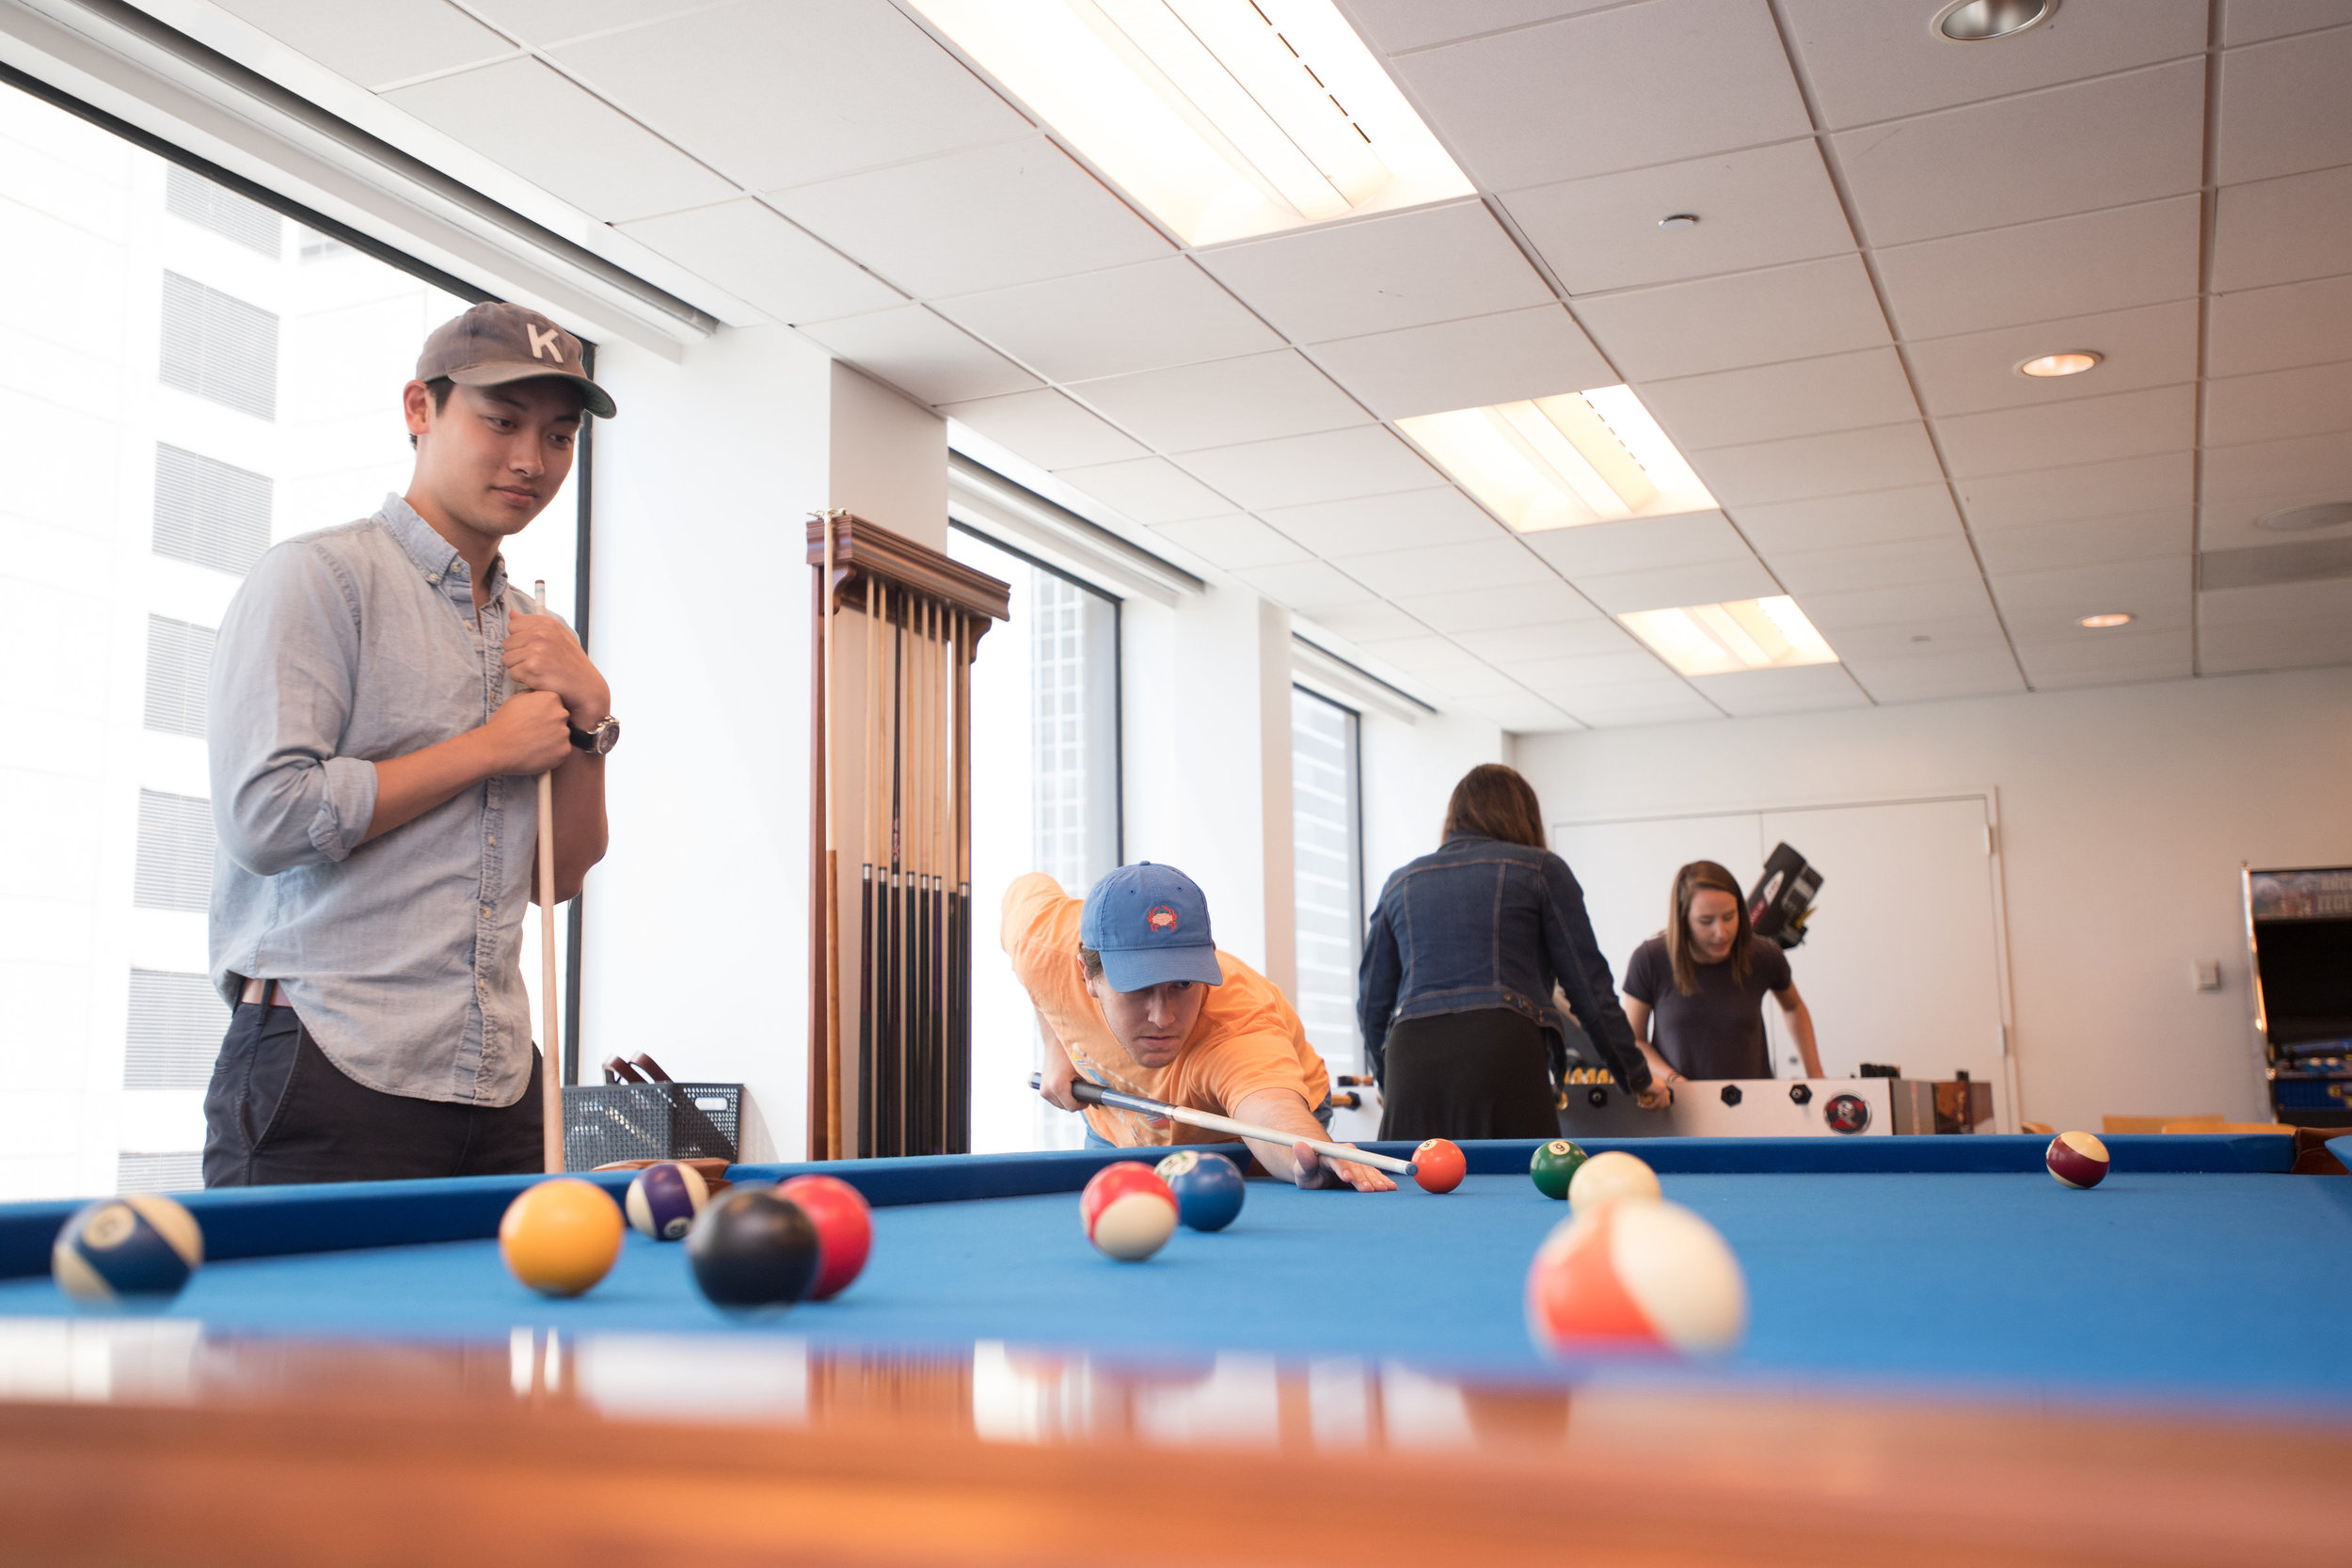 People playing pool in a game room.